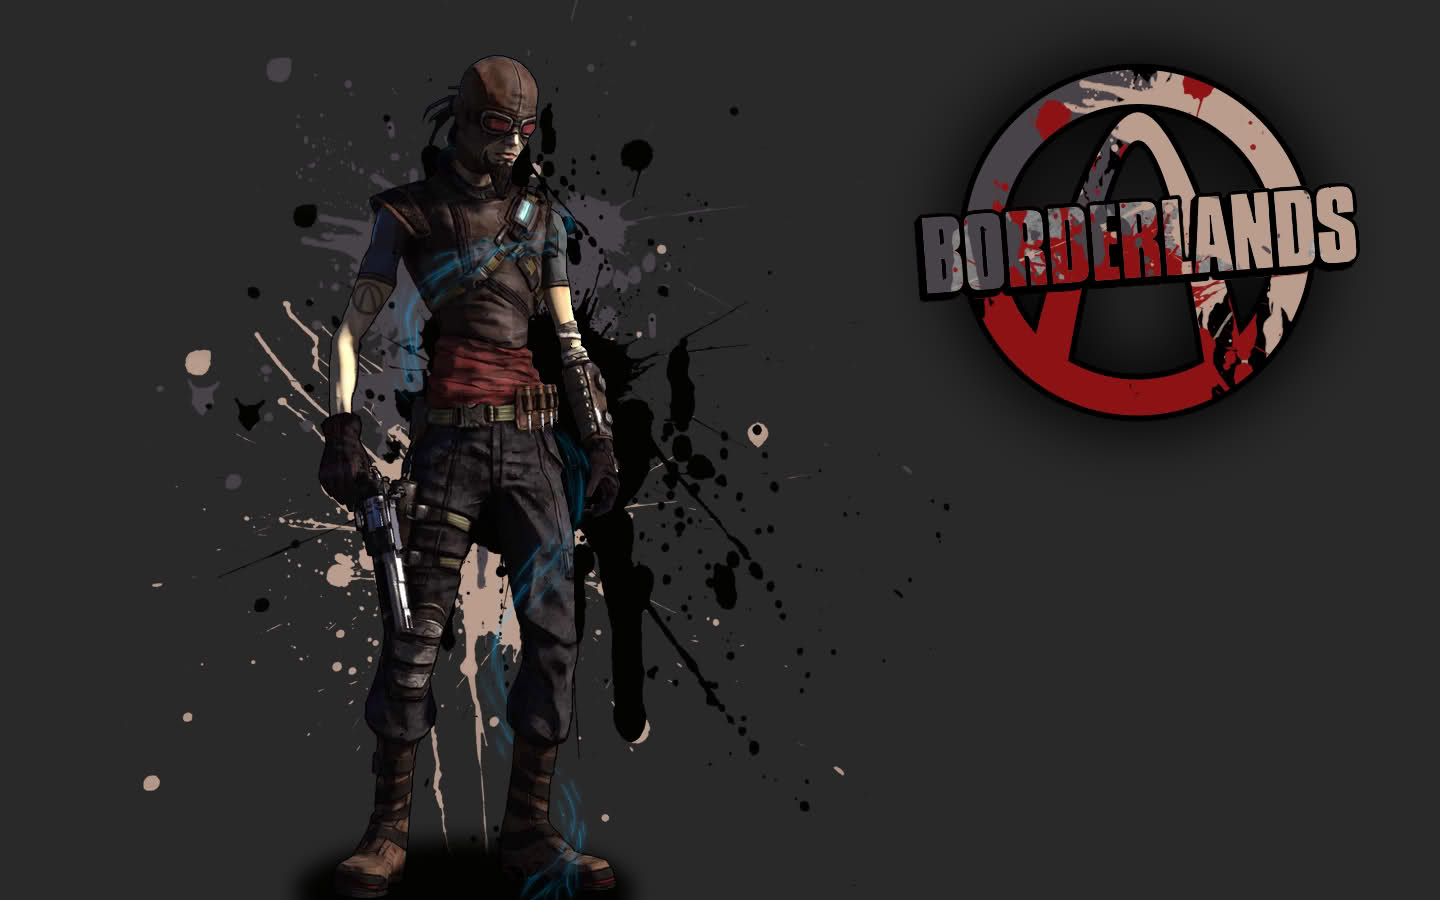 Borderlands Wallpaper 1440x900 896